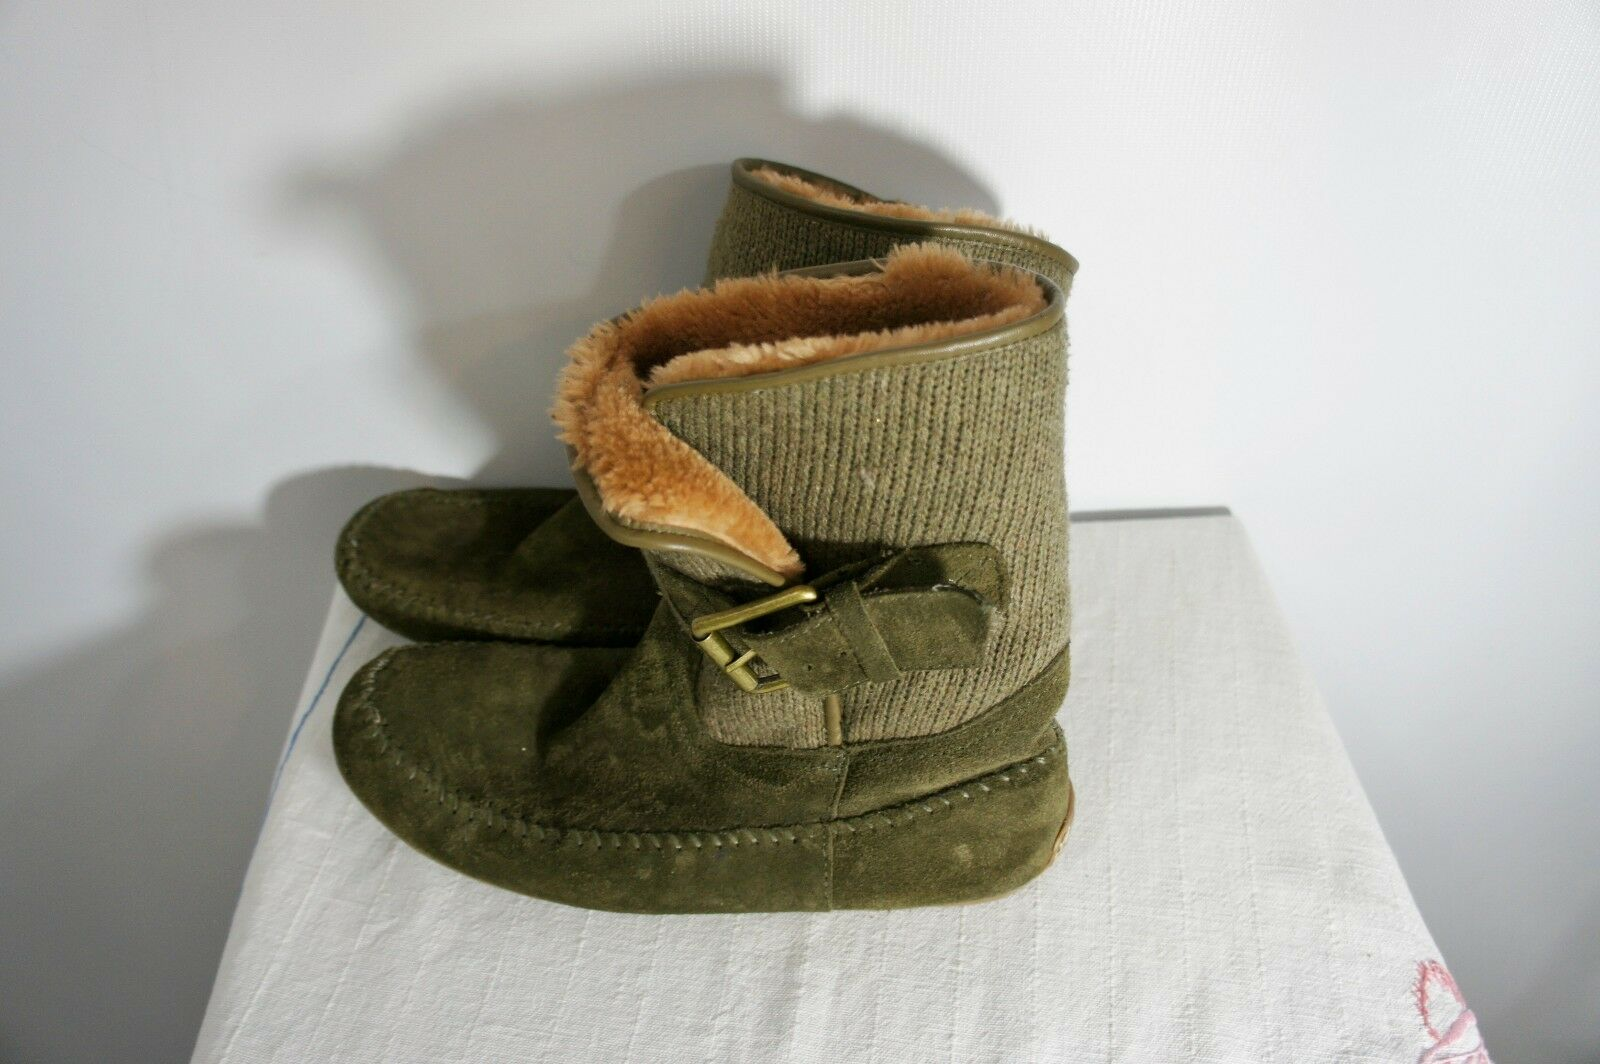 Lucky Brand Damens's Olive Green Aisley Sweater Suede Ankle Stiefel 8/38 faux fur